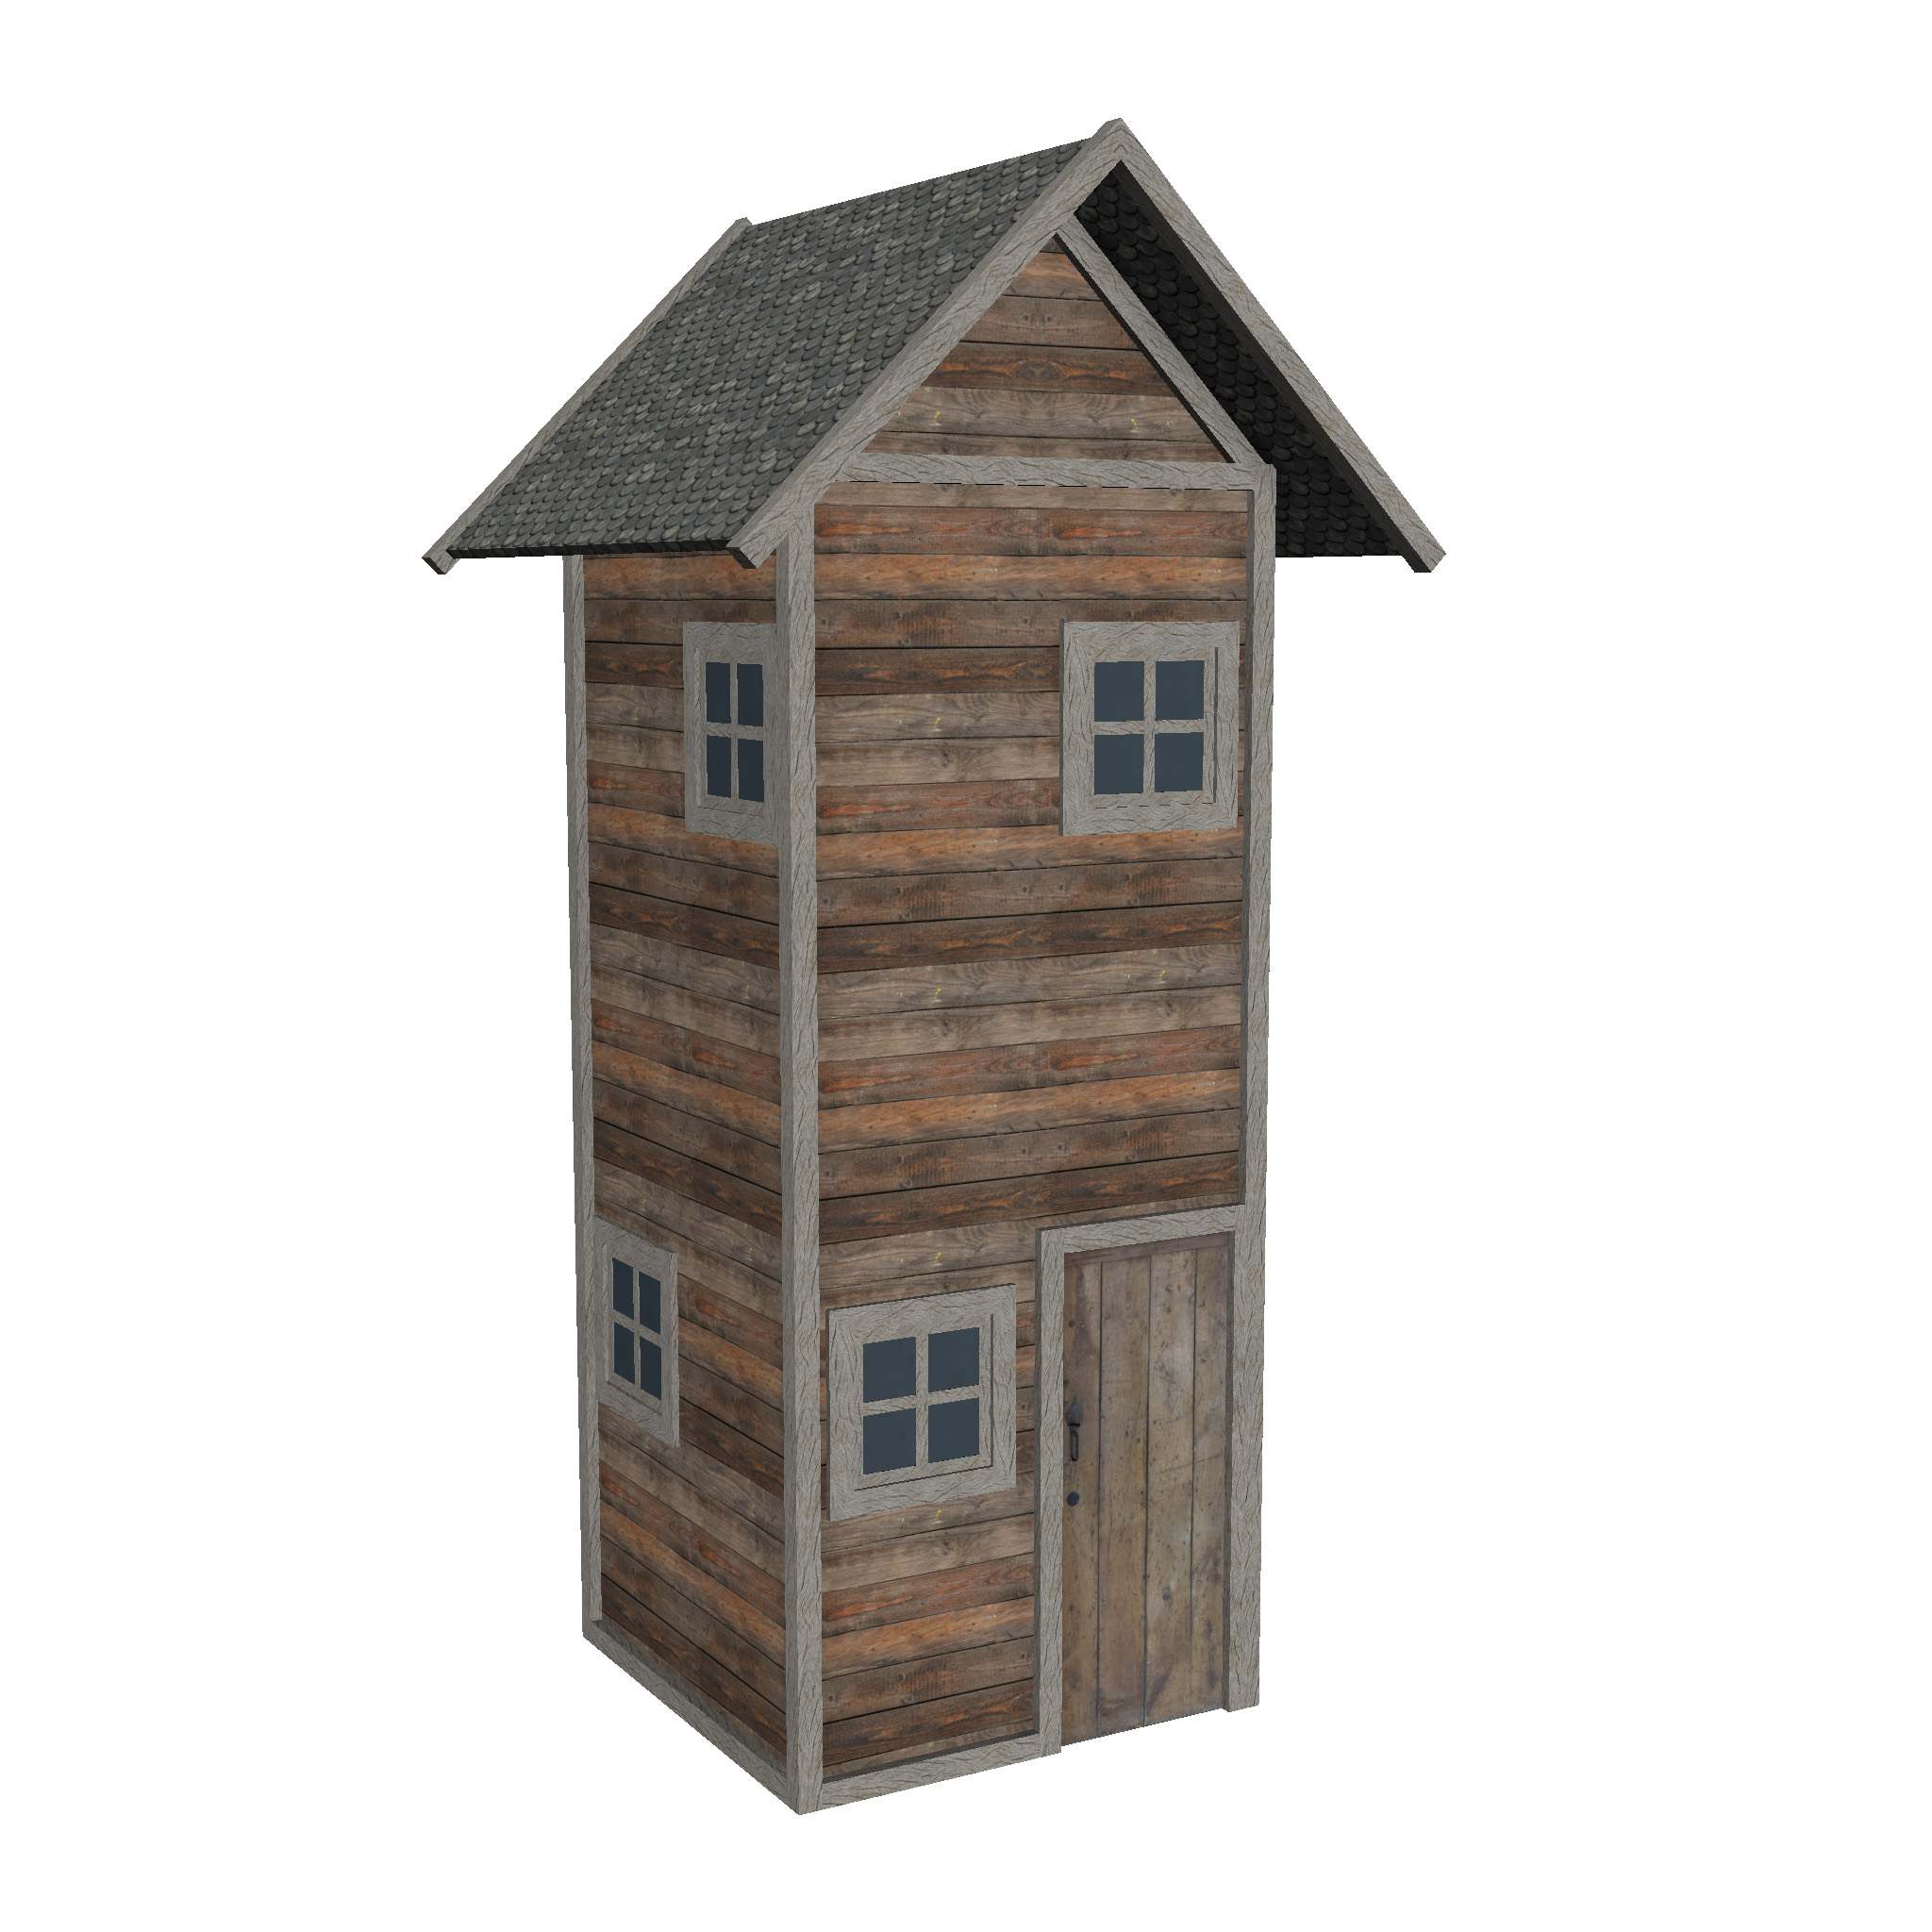 modular wood house set 3d model fbx ma mb 271437